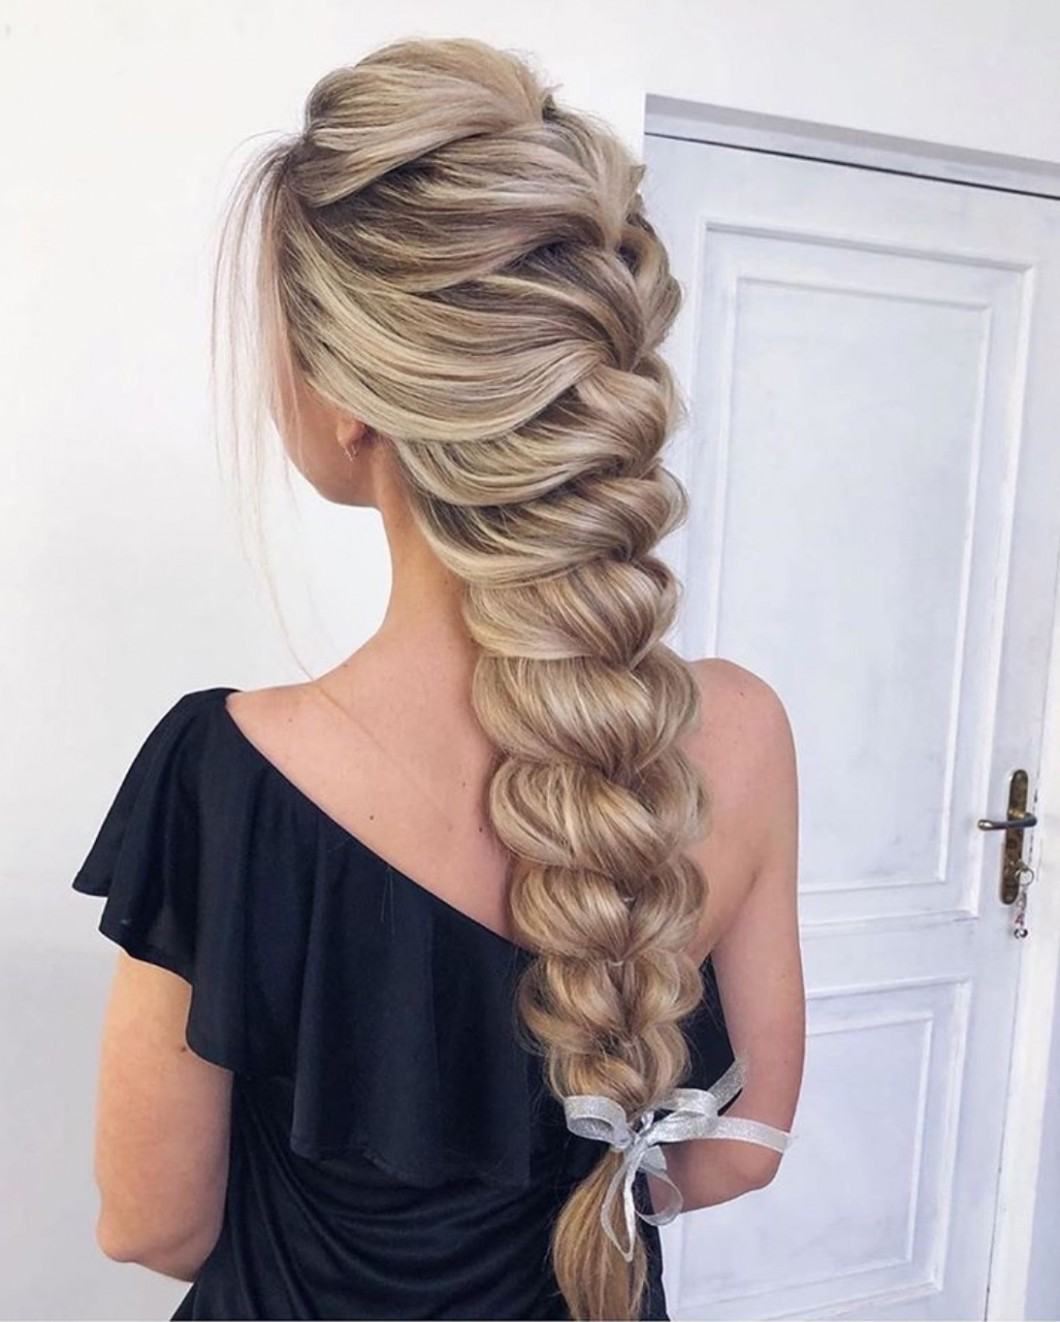 12 Easy Braided Hairstyles For Long Hair The Glossychic Easy Braided Hairstyles For Long Hair